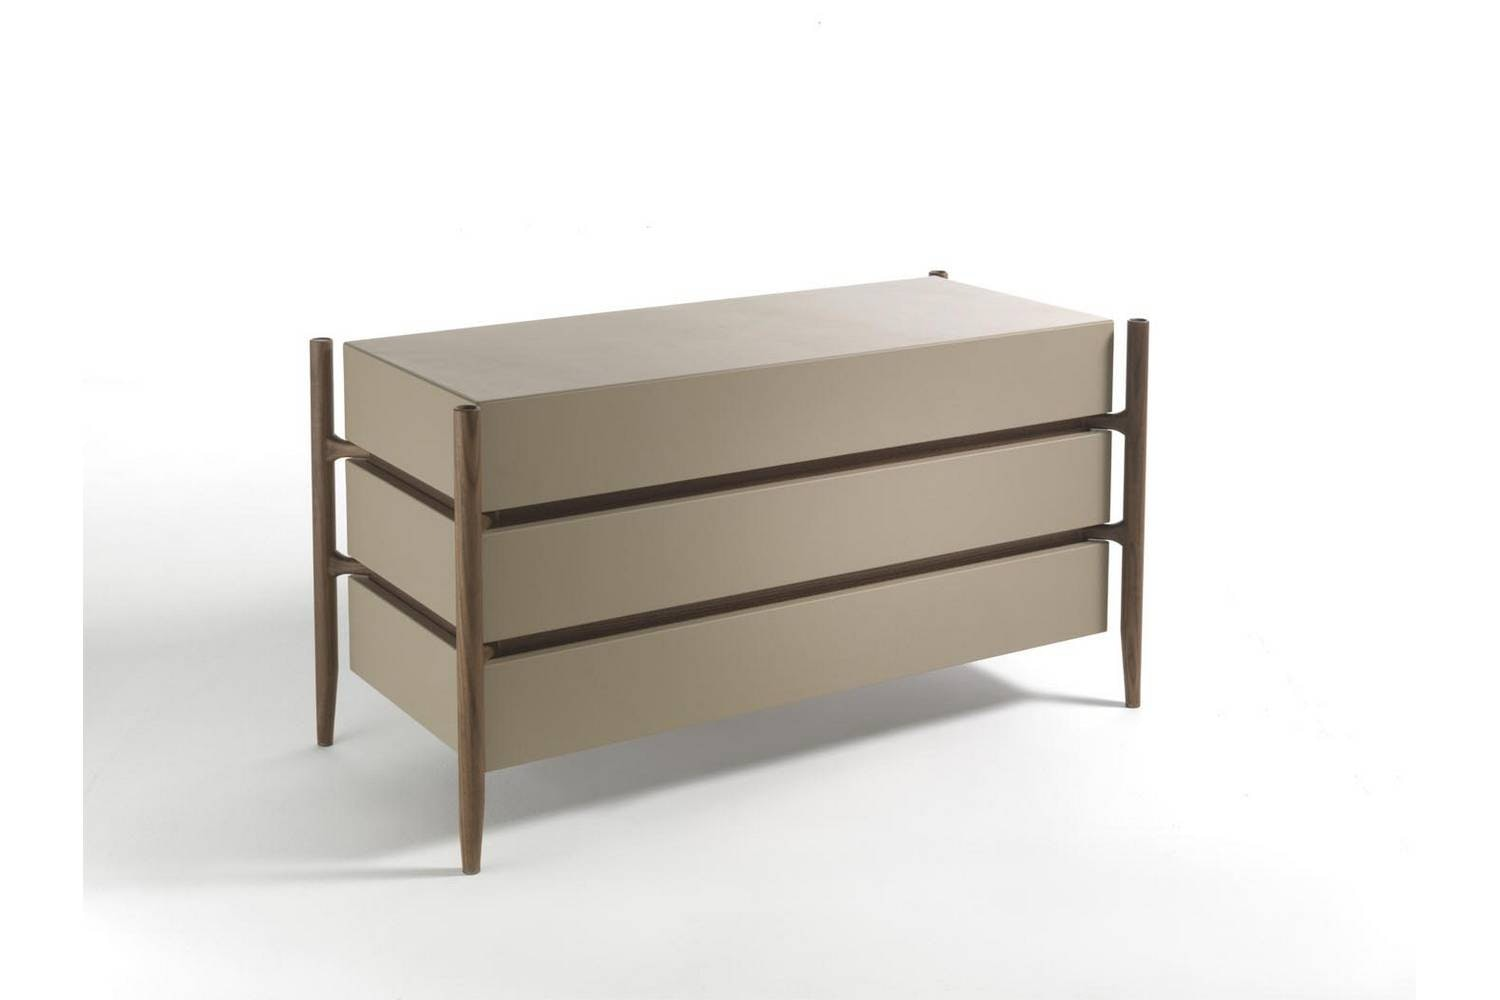 Regent Chest of Drawers by T. Colzani for Porada